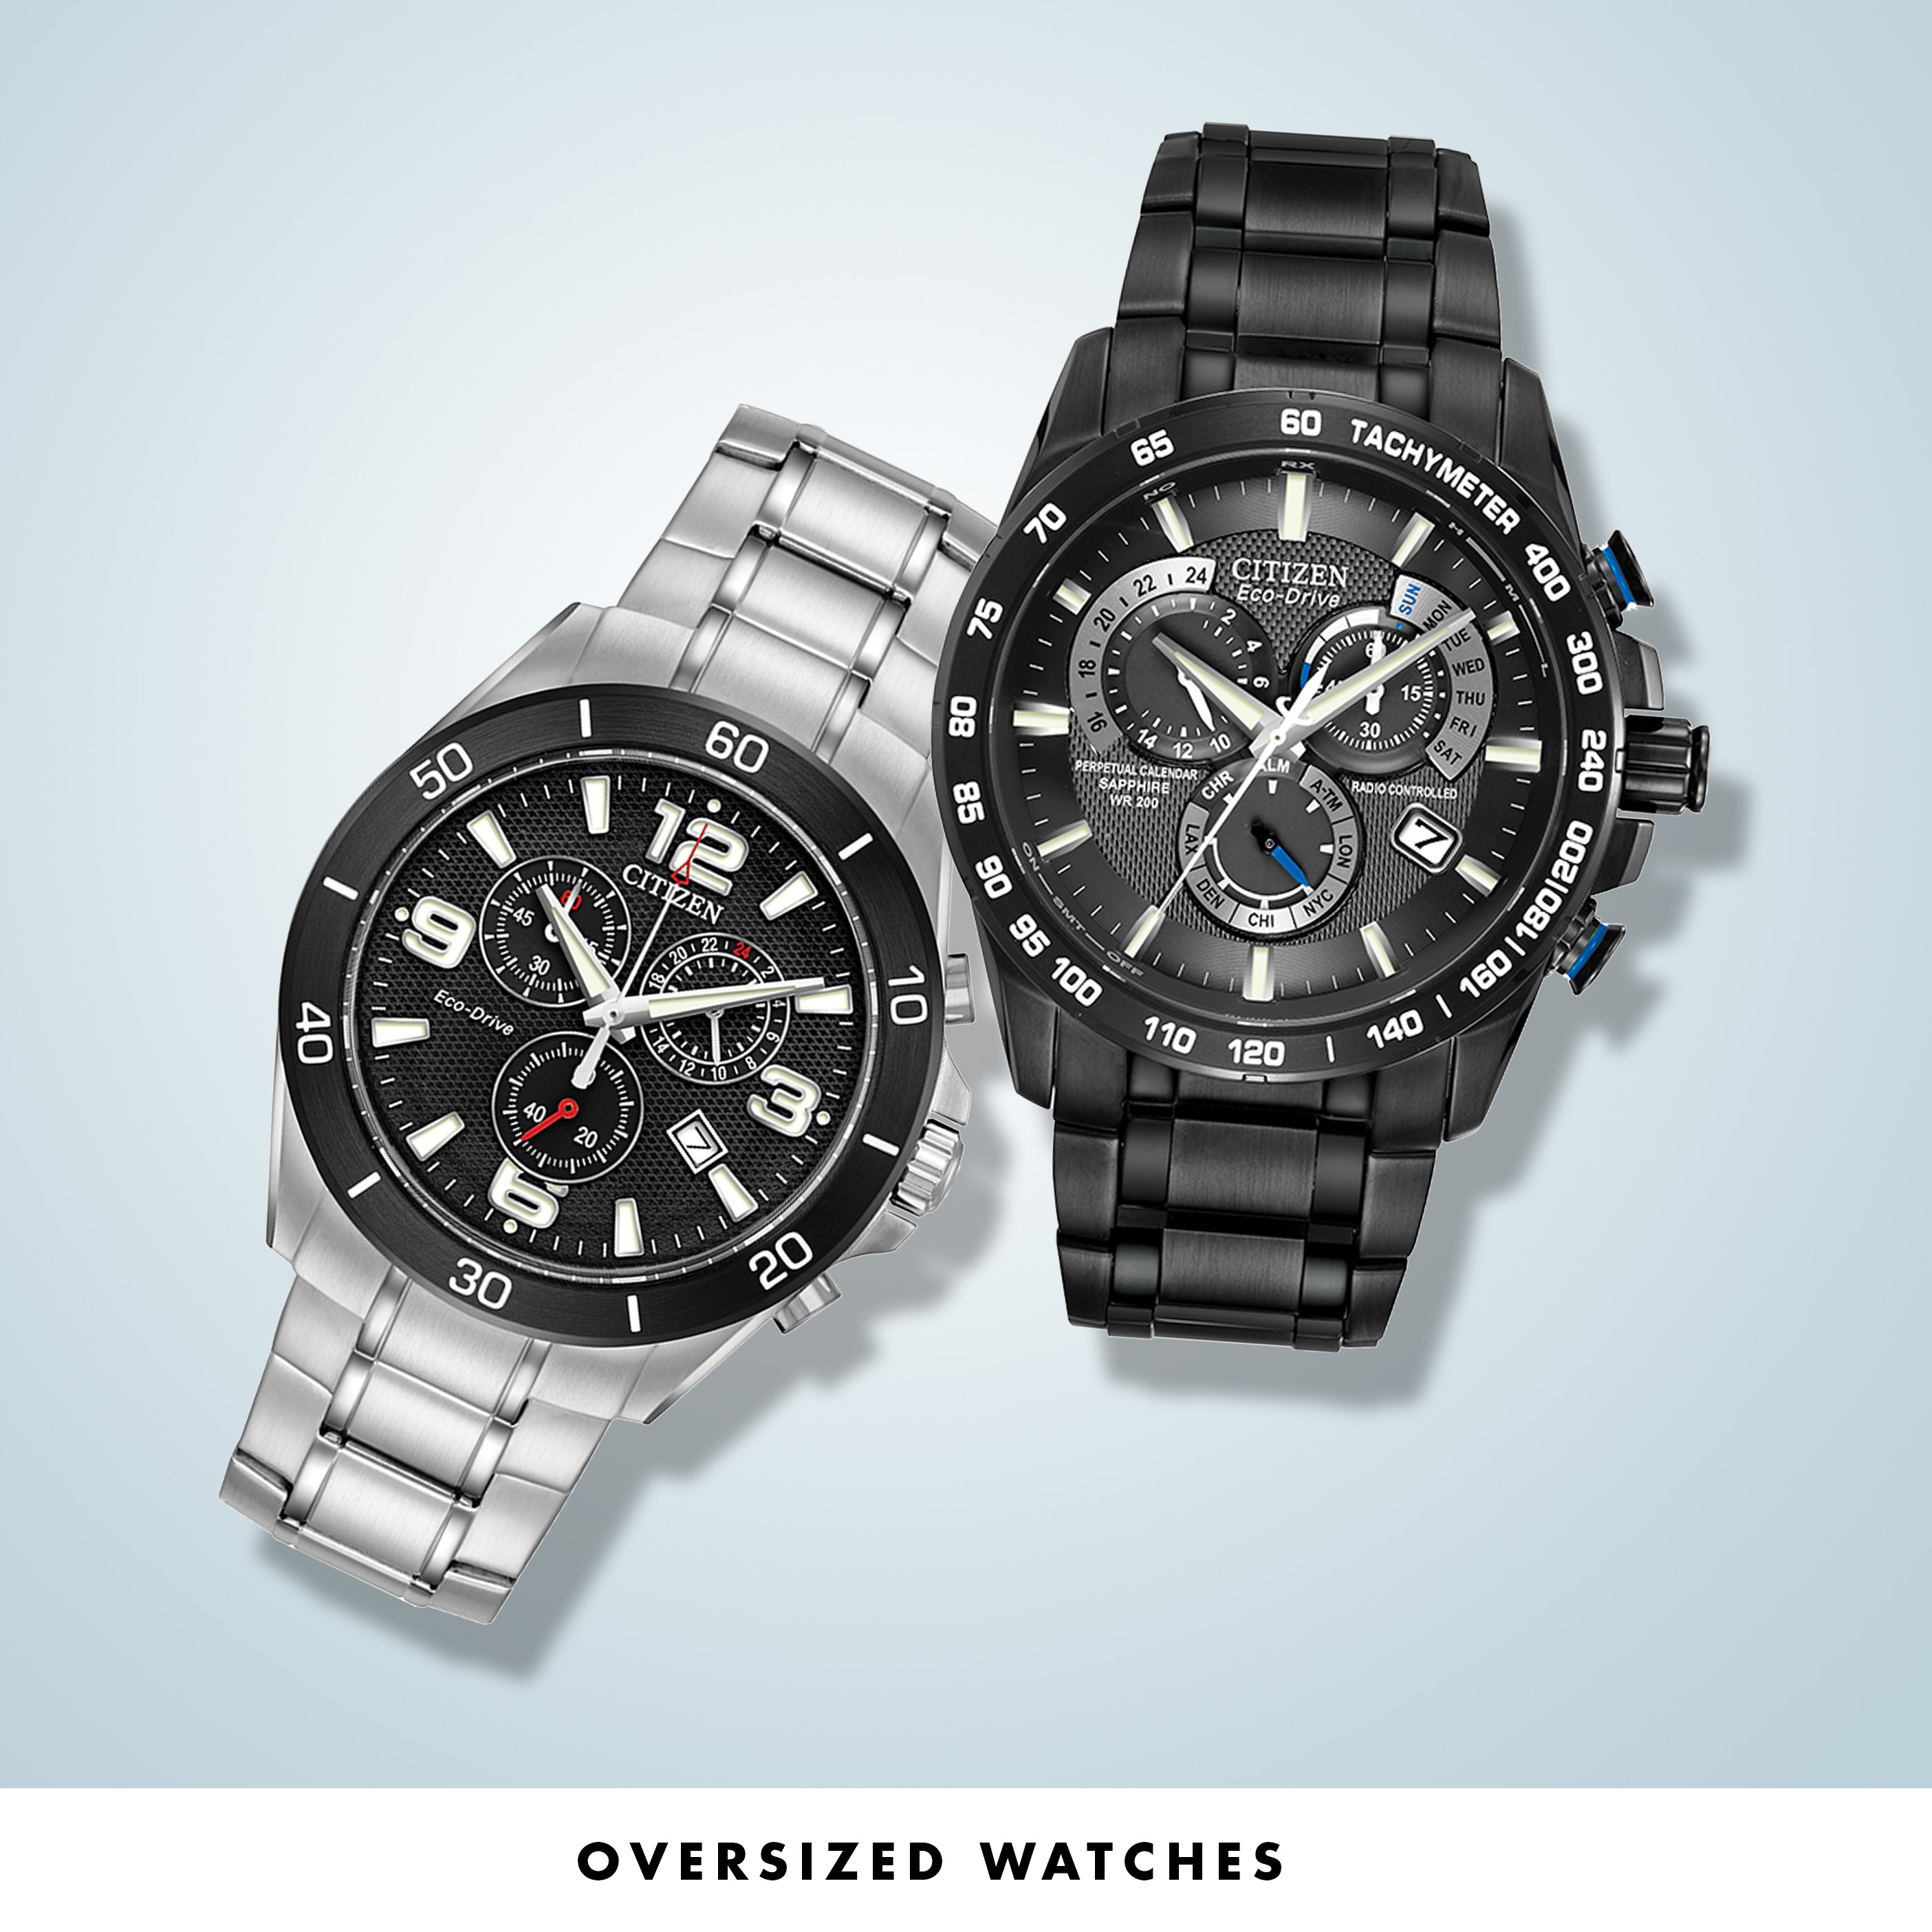 Oversized Watches